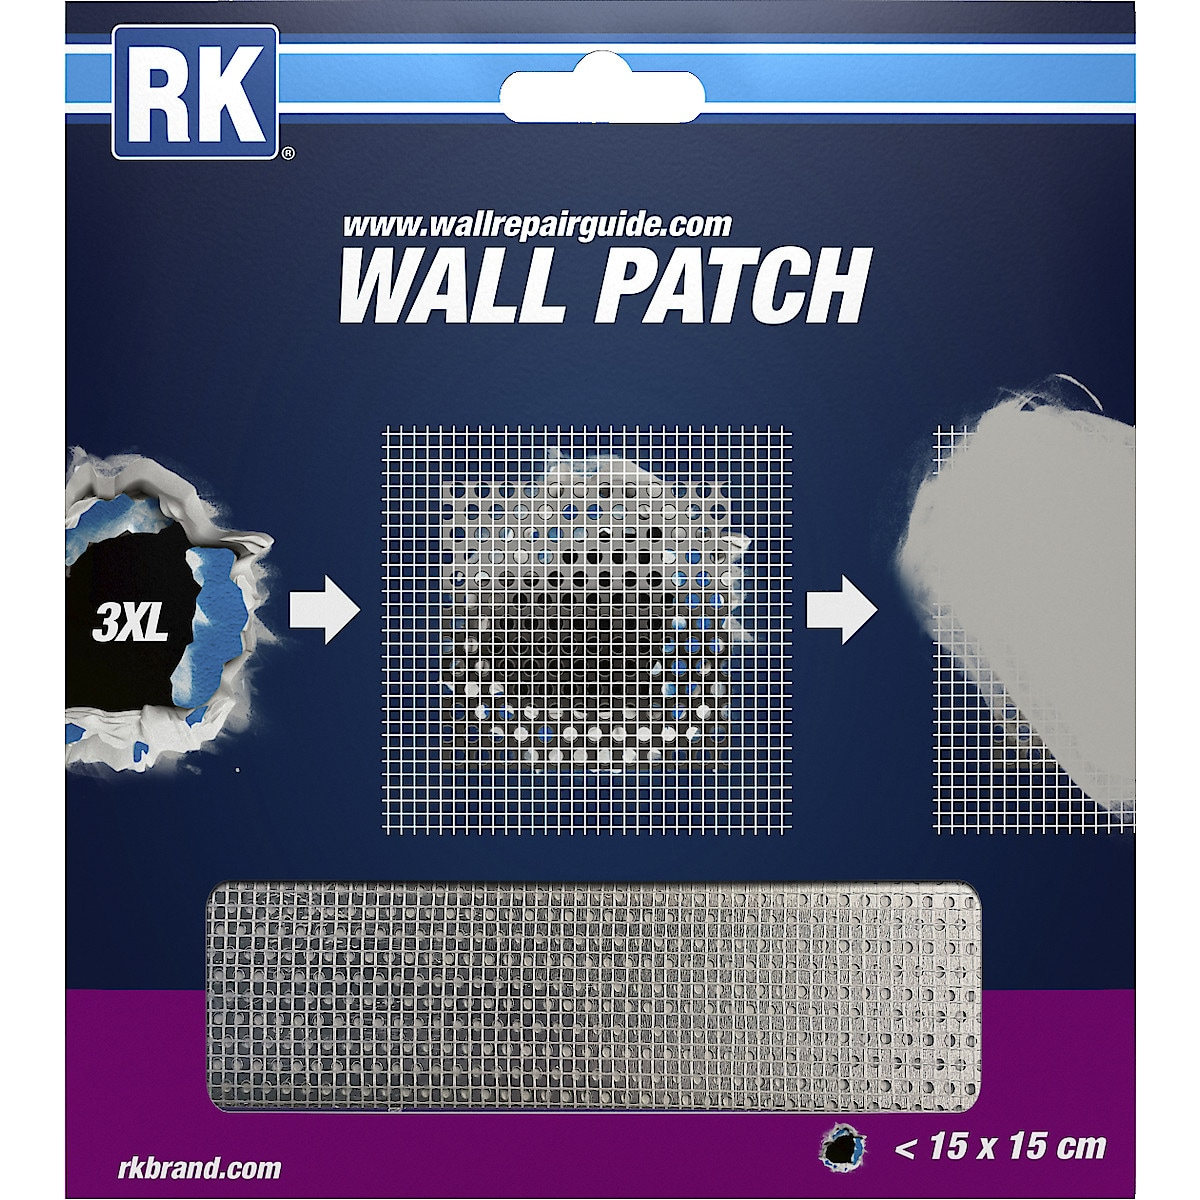 RK Wall Patch, 15 x 15 cm